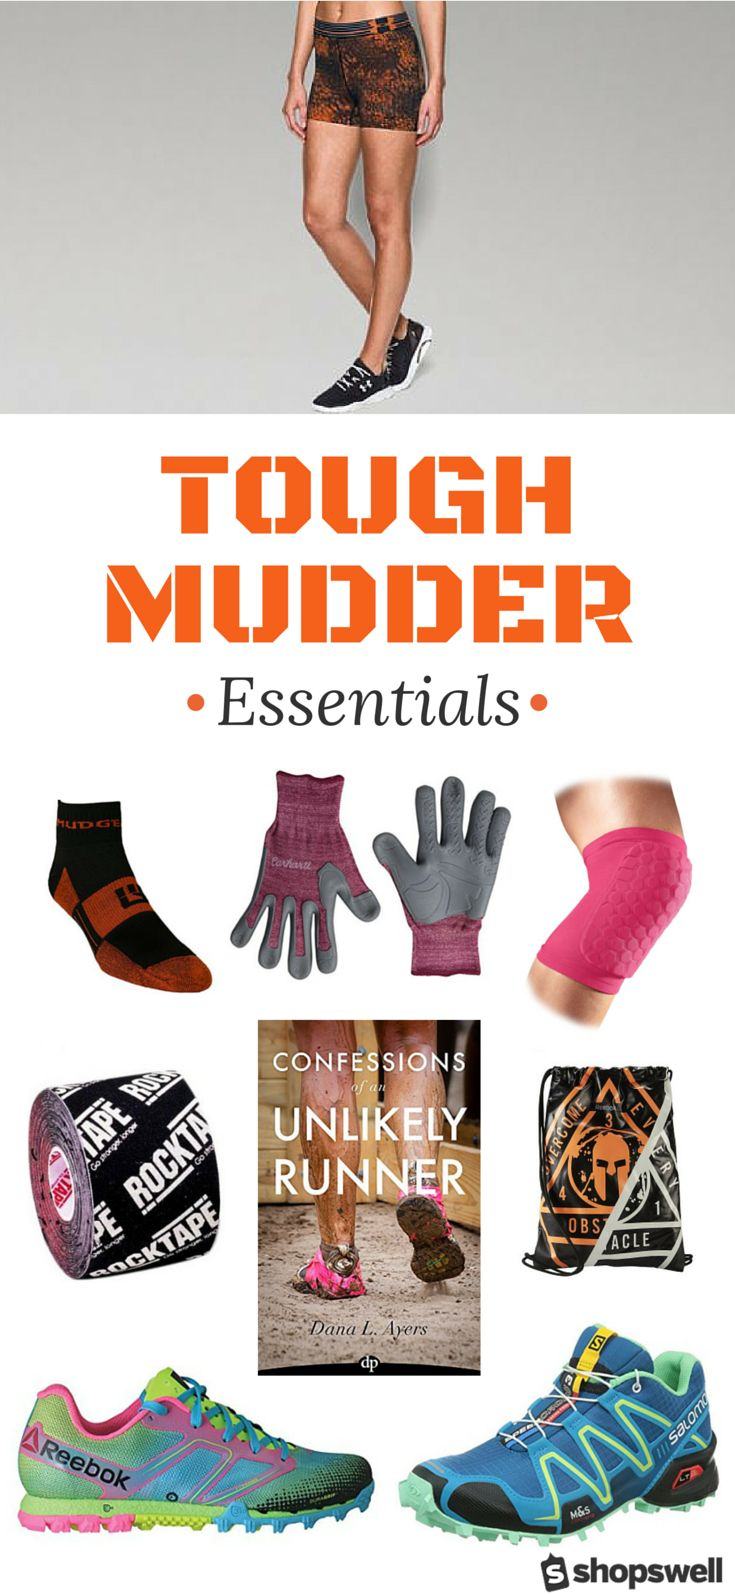 From shoes to gear and the fuel to get you to the finish line - this collection has everything you need for your Tough Mudder race day.